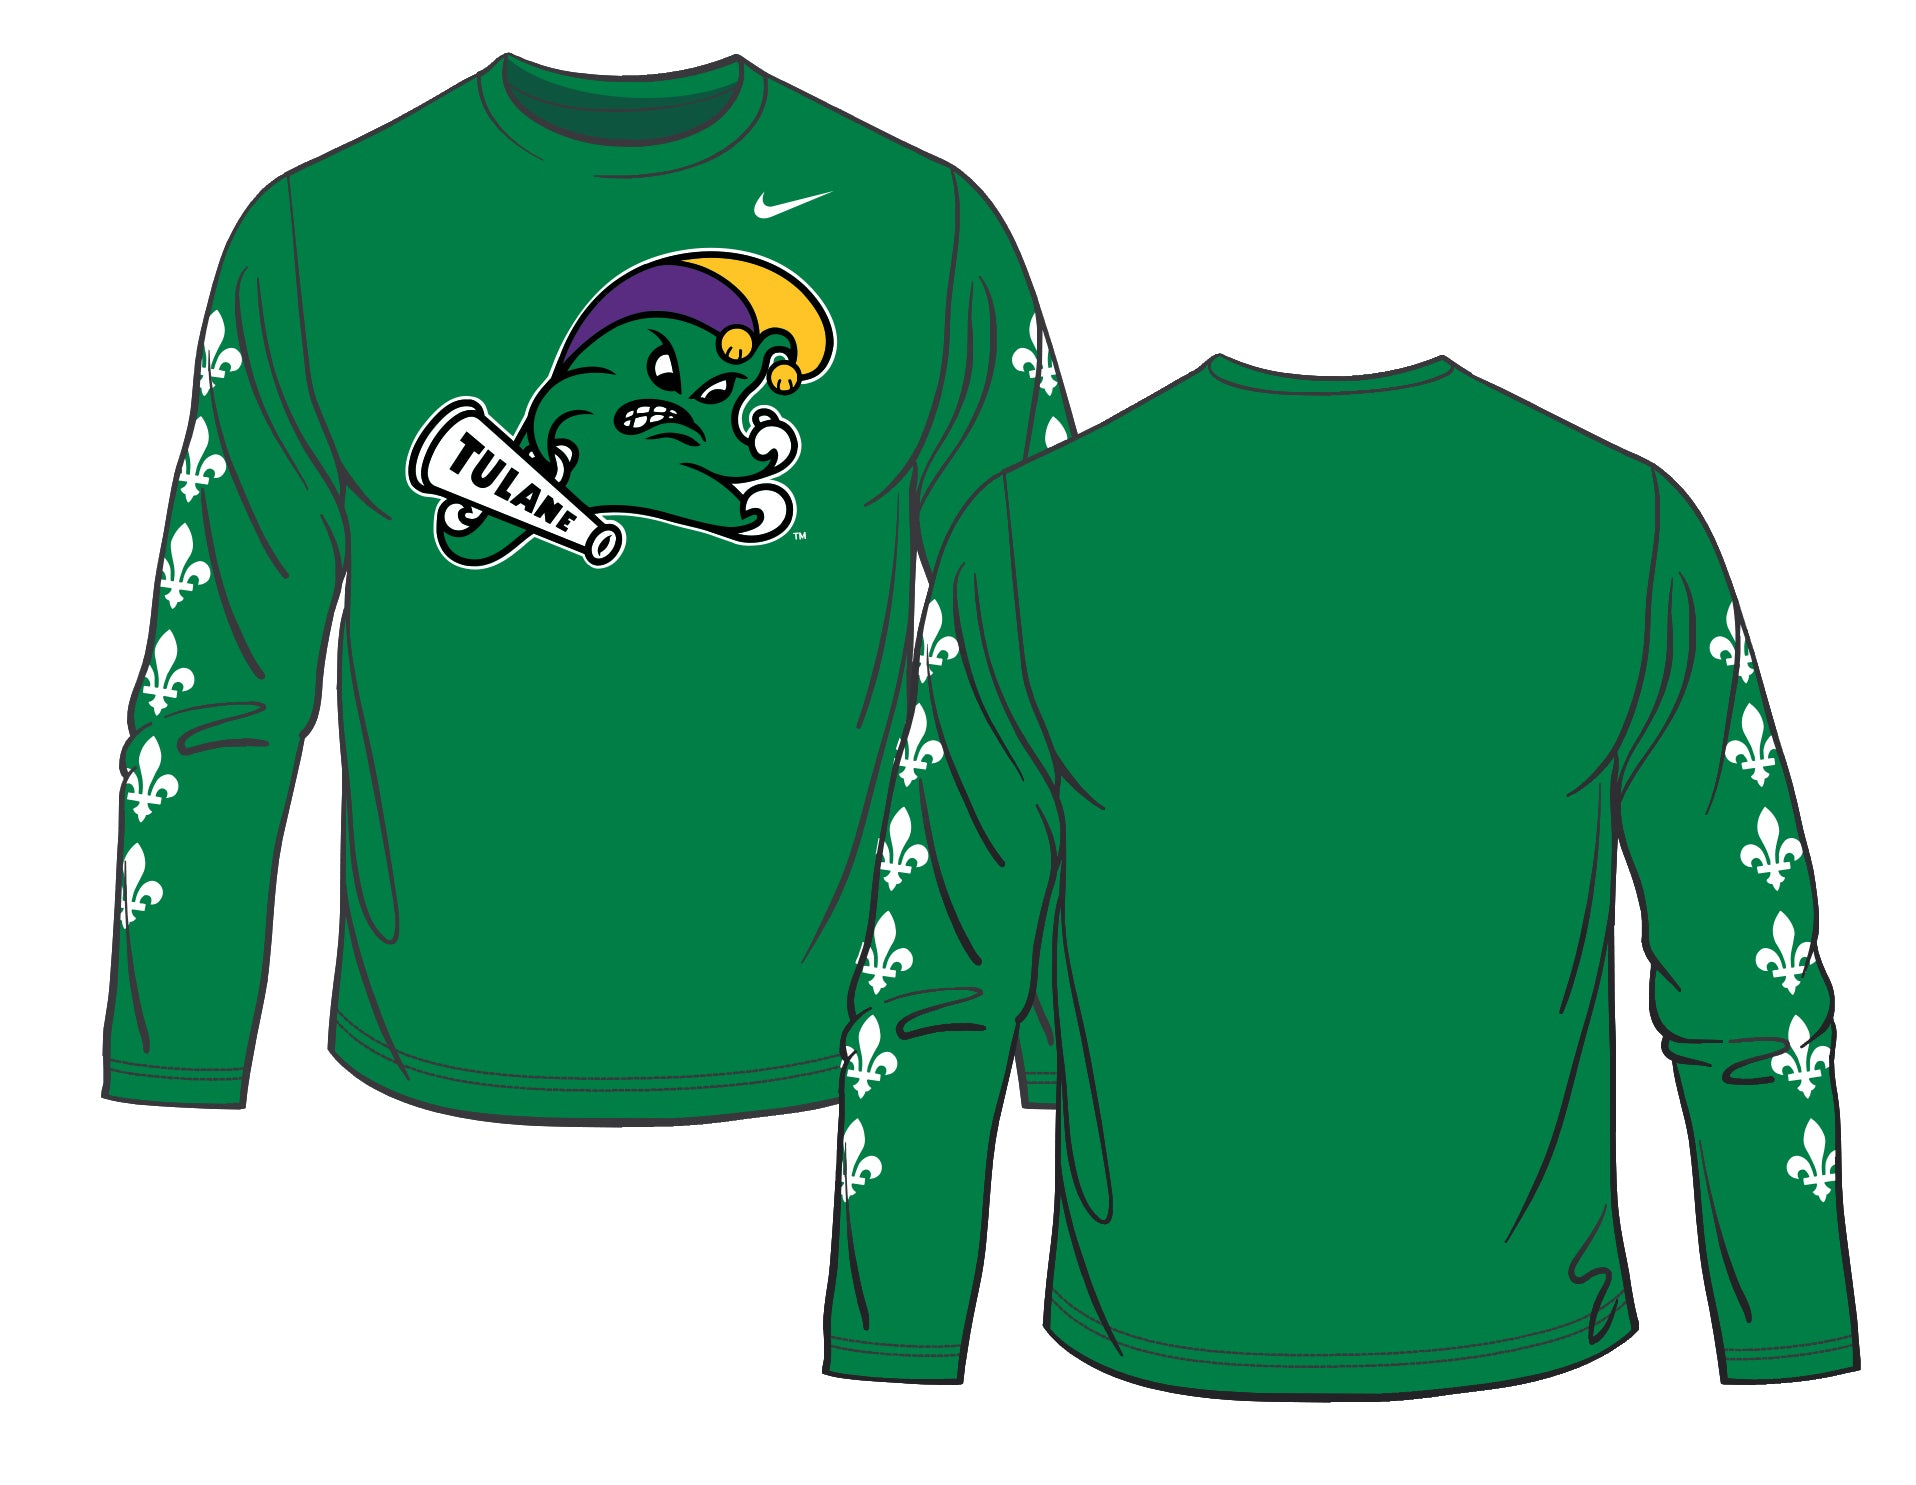 7c0519688 Home > Products > Tulane Angry Wave Mardi Gras Jester Nike DriFit Long  Sleeve Shooting Shirt